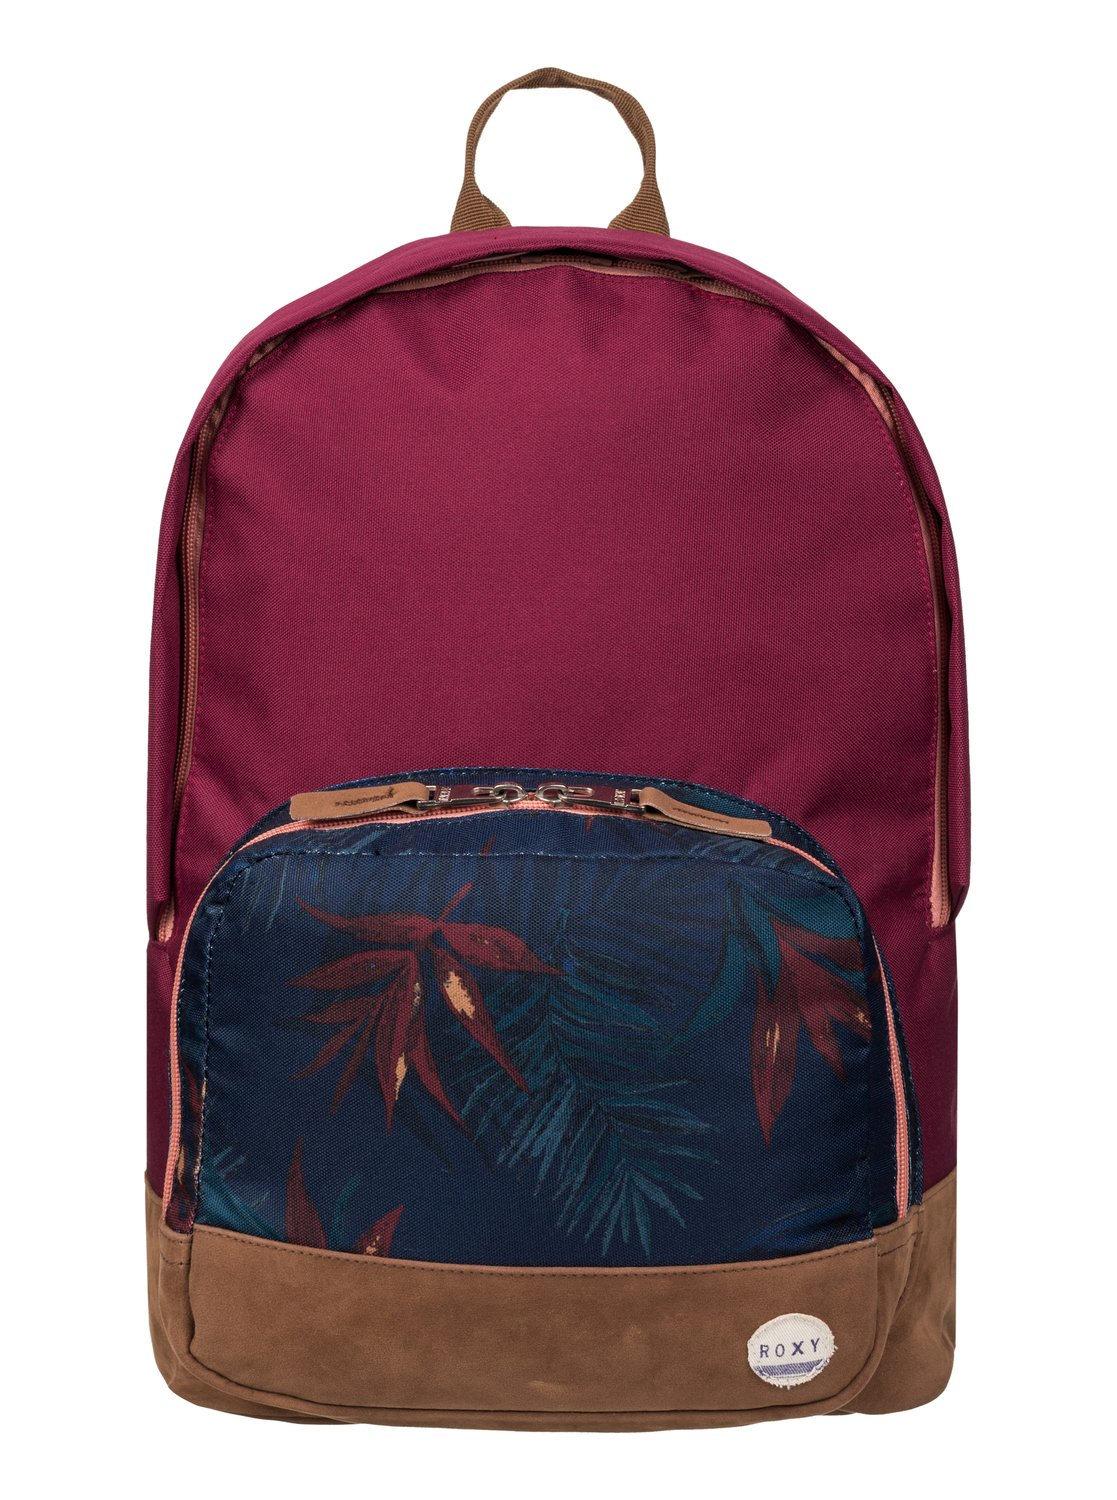 Pink Sky Backpack 2153040902 | Roxy